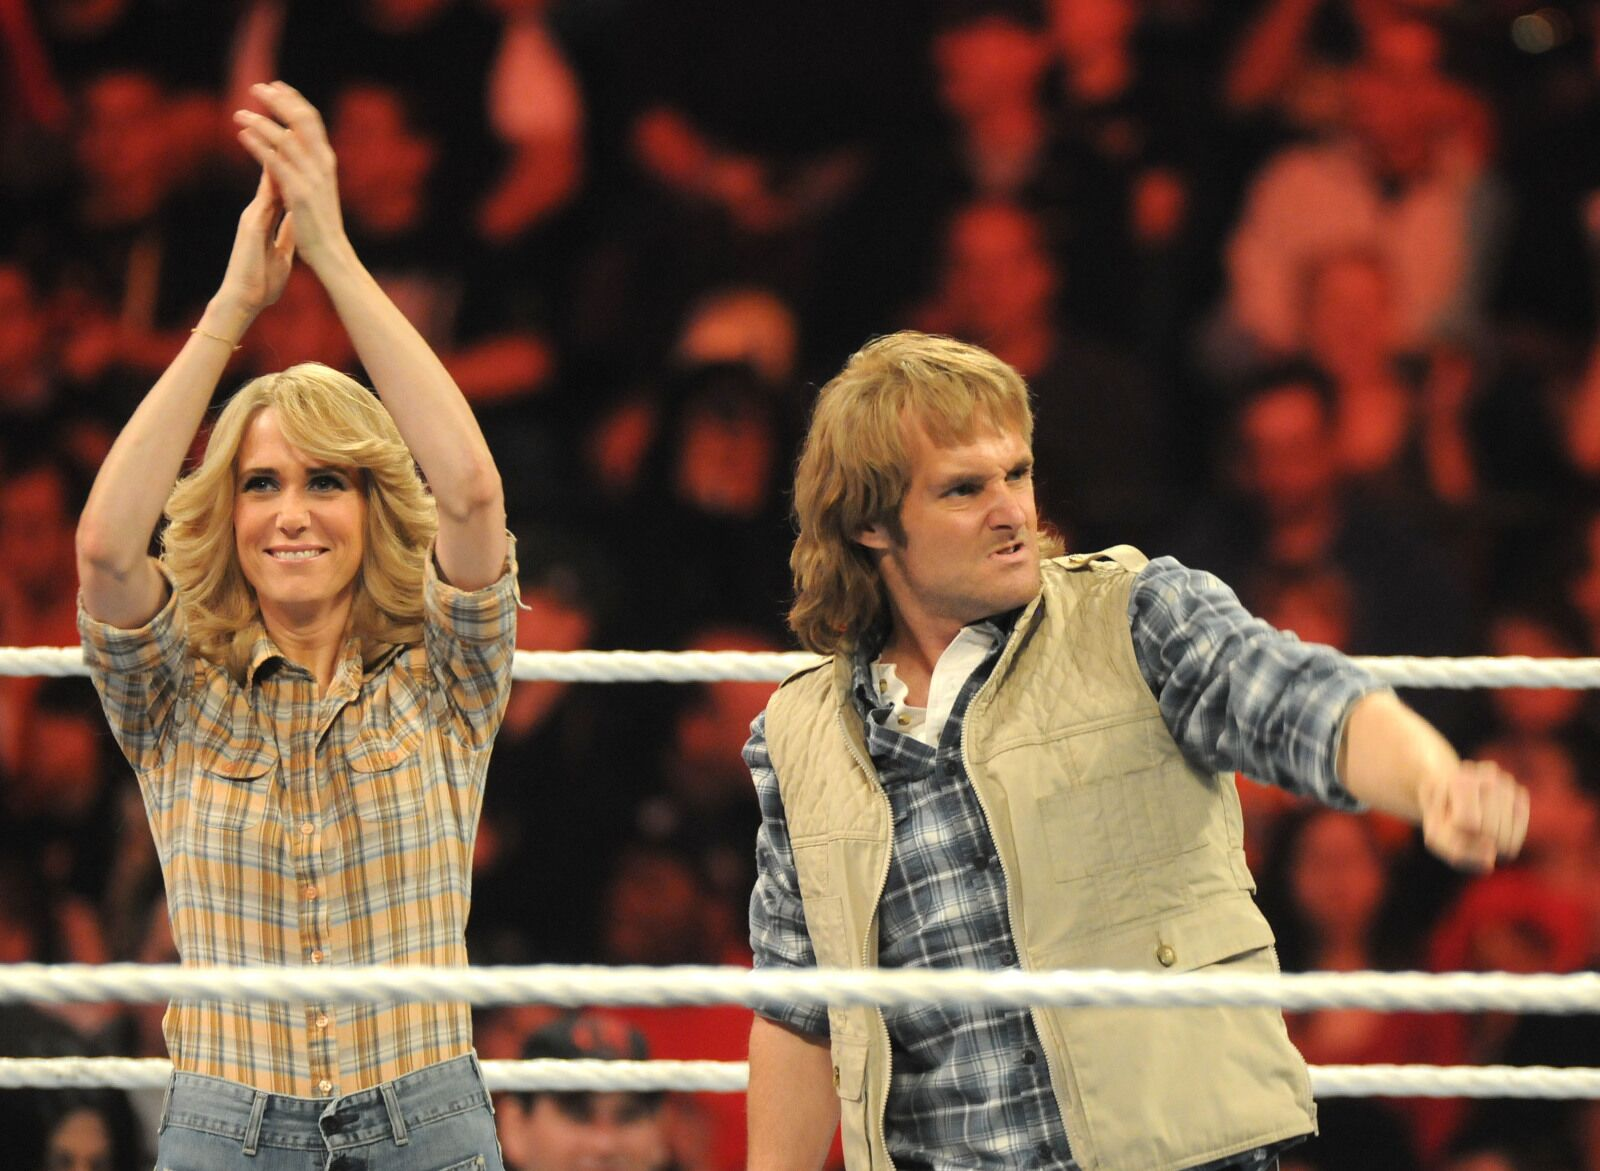 MacGruber (yes, that MacGruber) is set to return for a TV spinoff